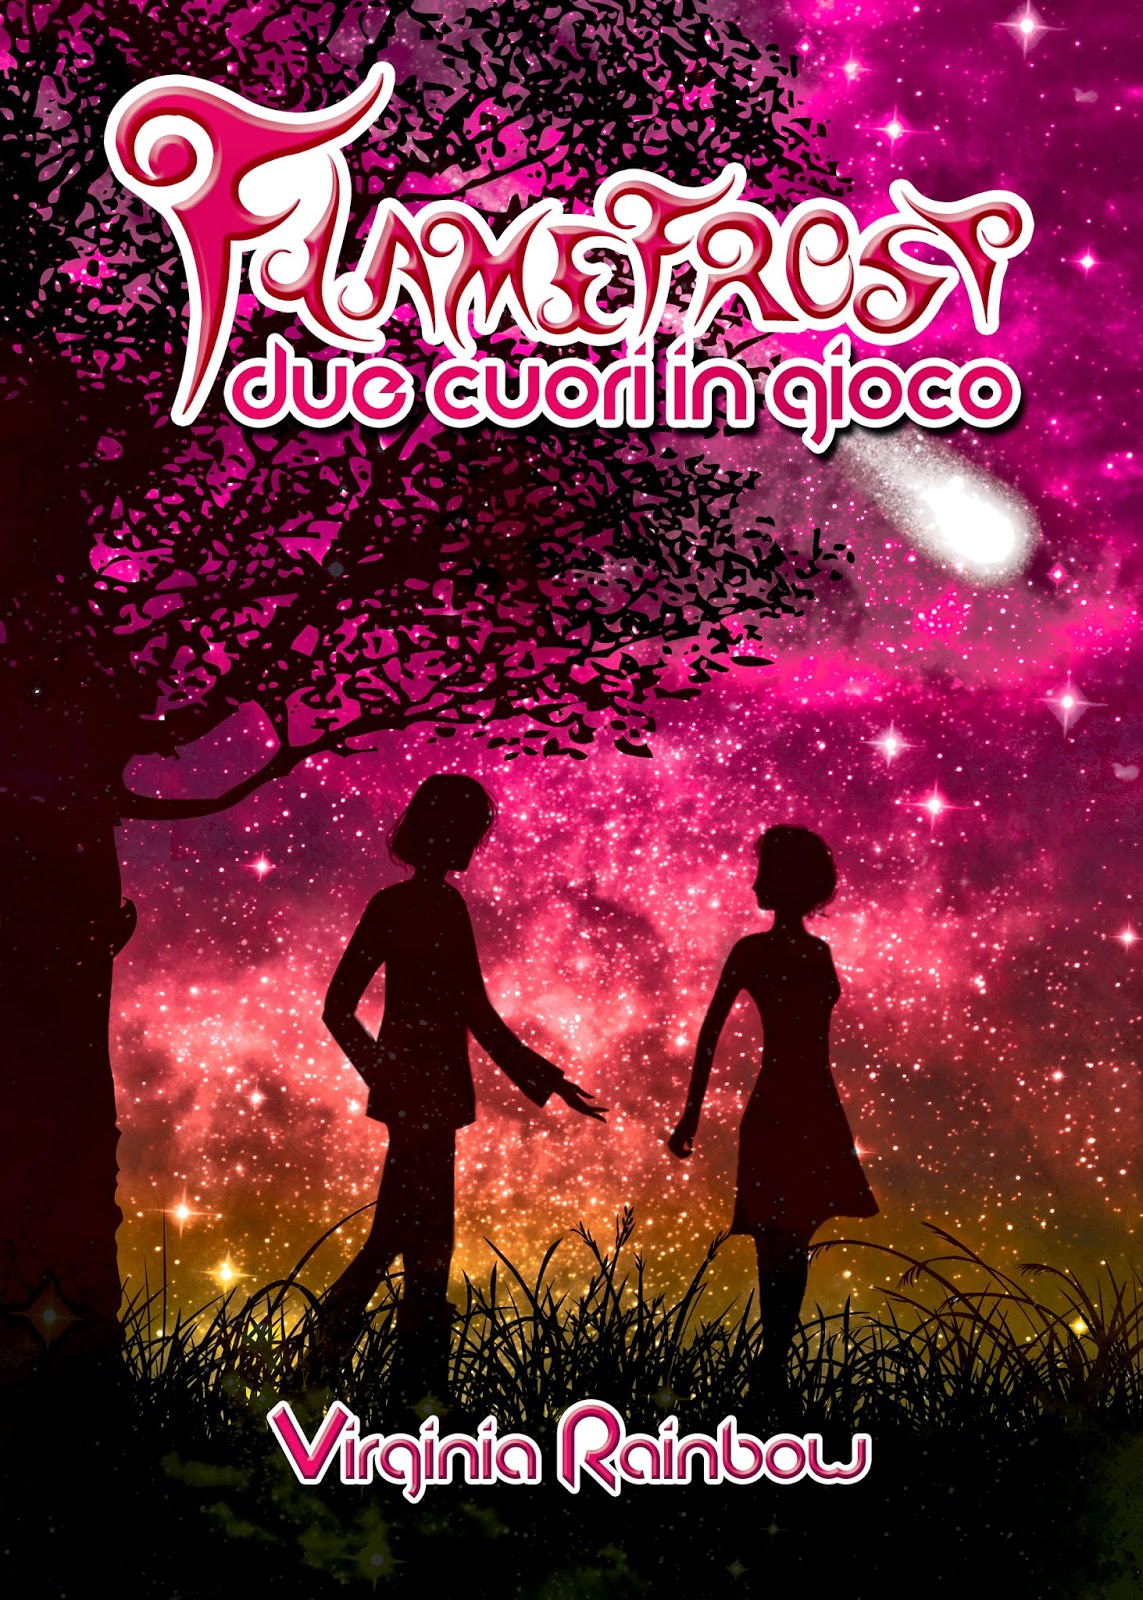 http://www.youcanprint.it/youcanprint-libreria/narrativa/flamefrost-due-cuori-in-gioco.html#.U5rxYLF9L5M